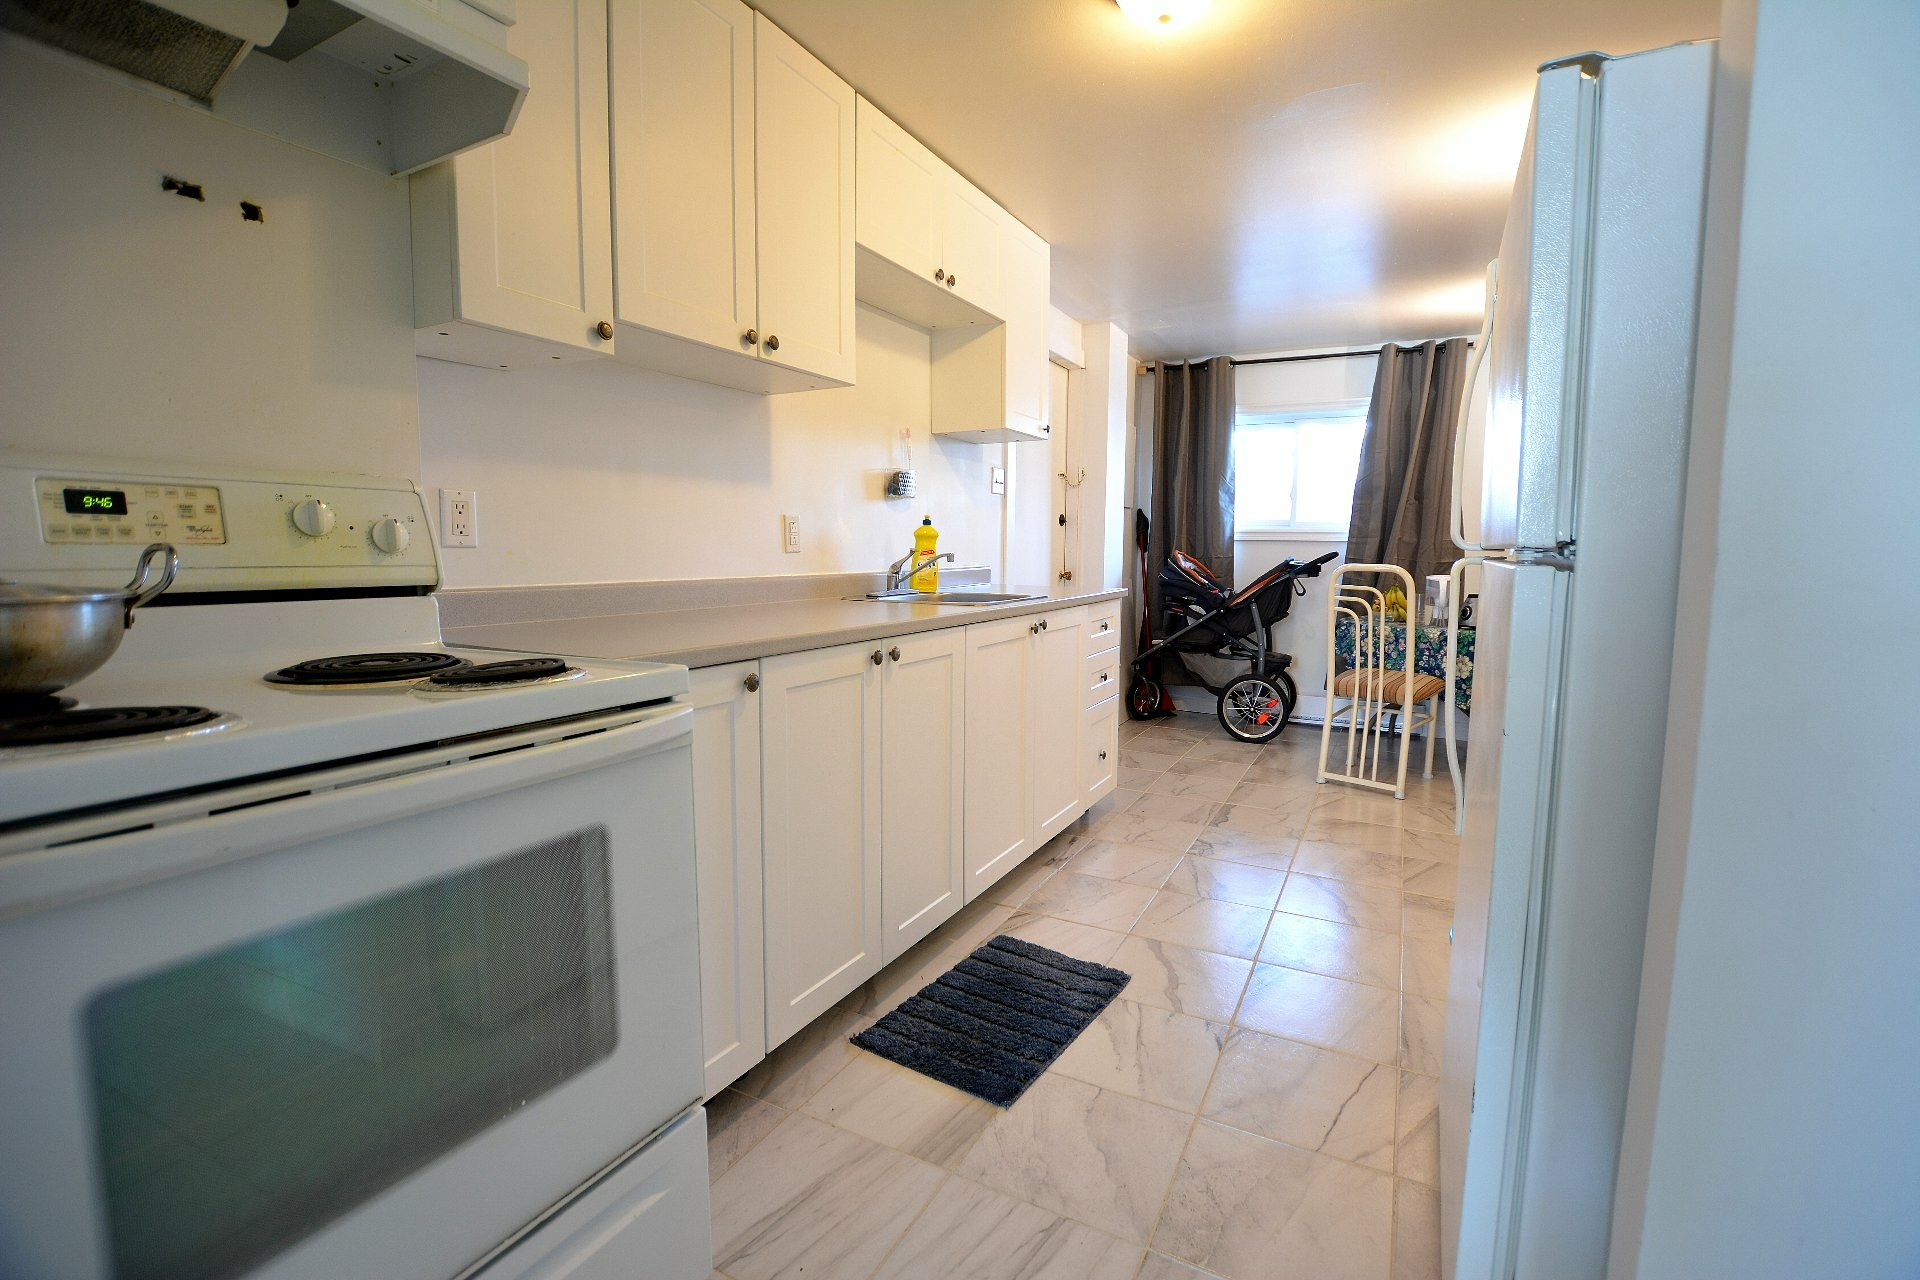 image 9 - Income property For sale Pierrefonds-Roxboro Montréal  - 4 rooms